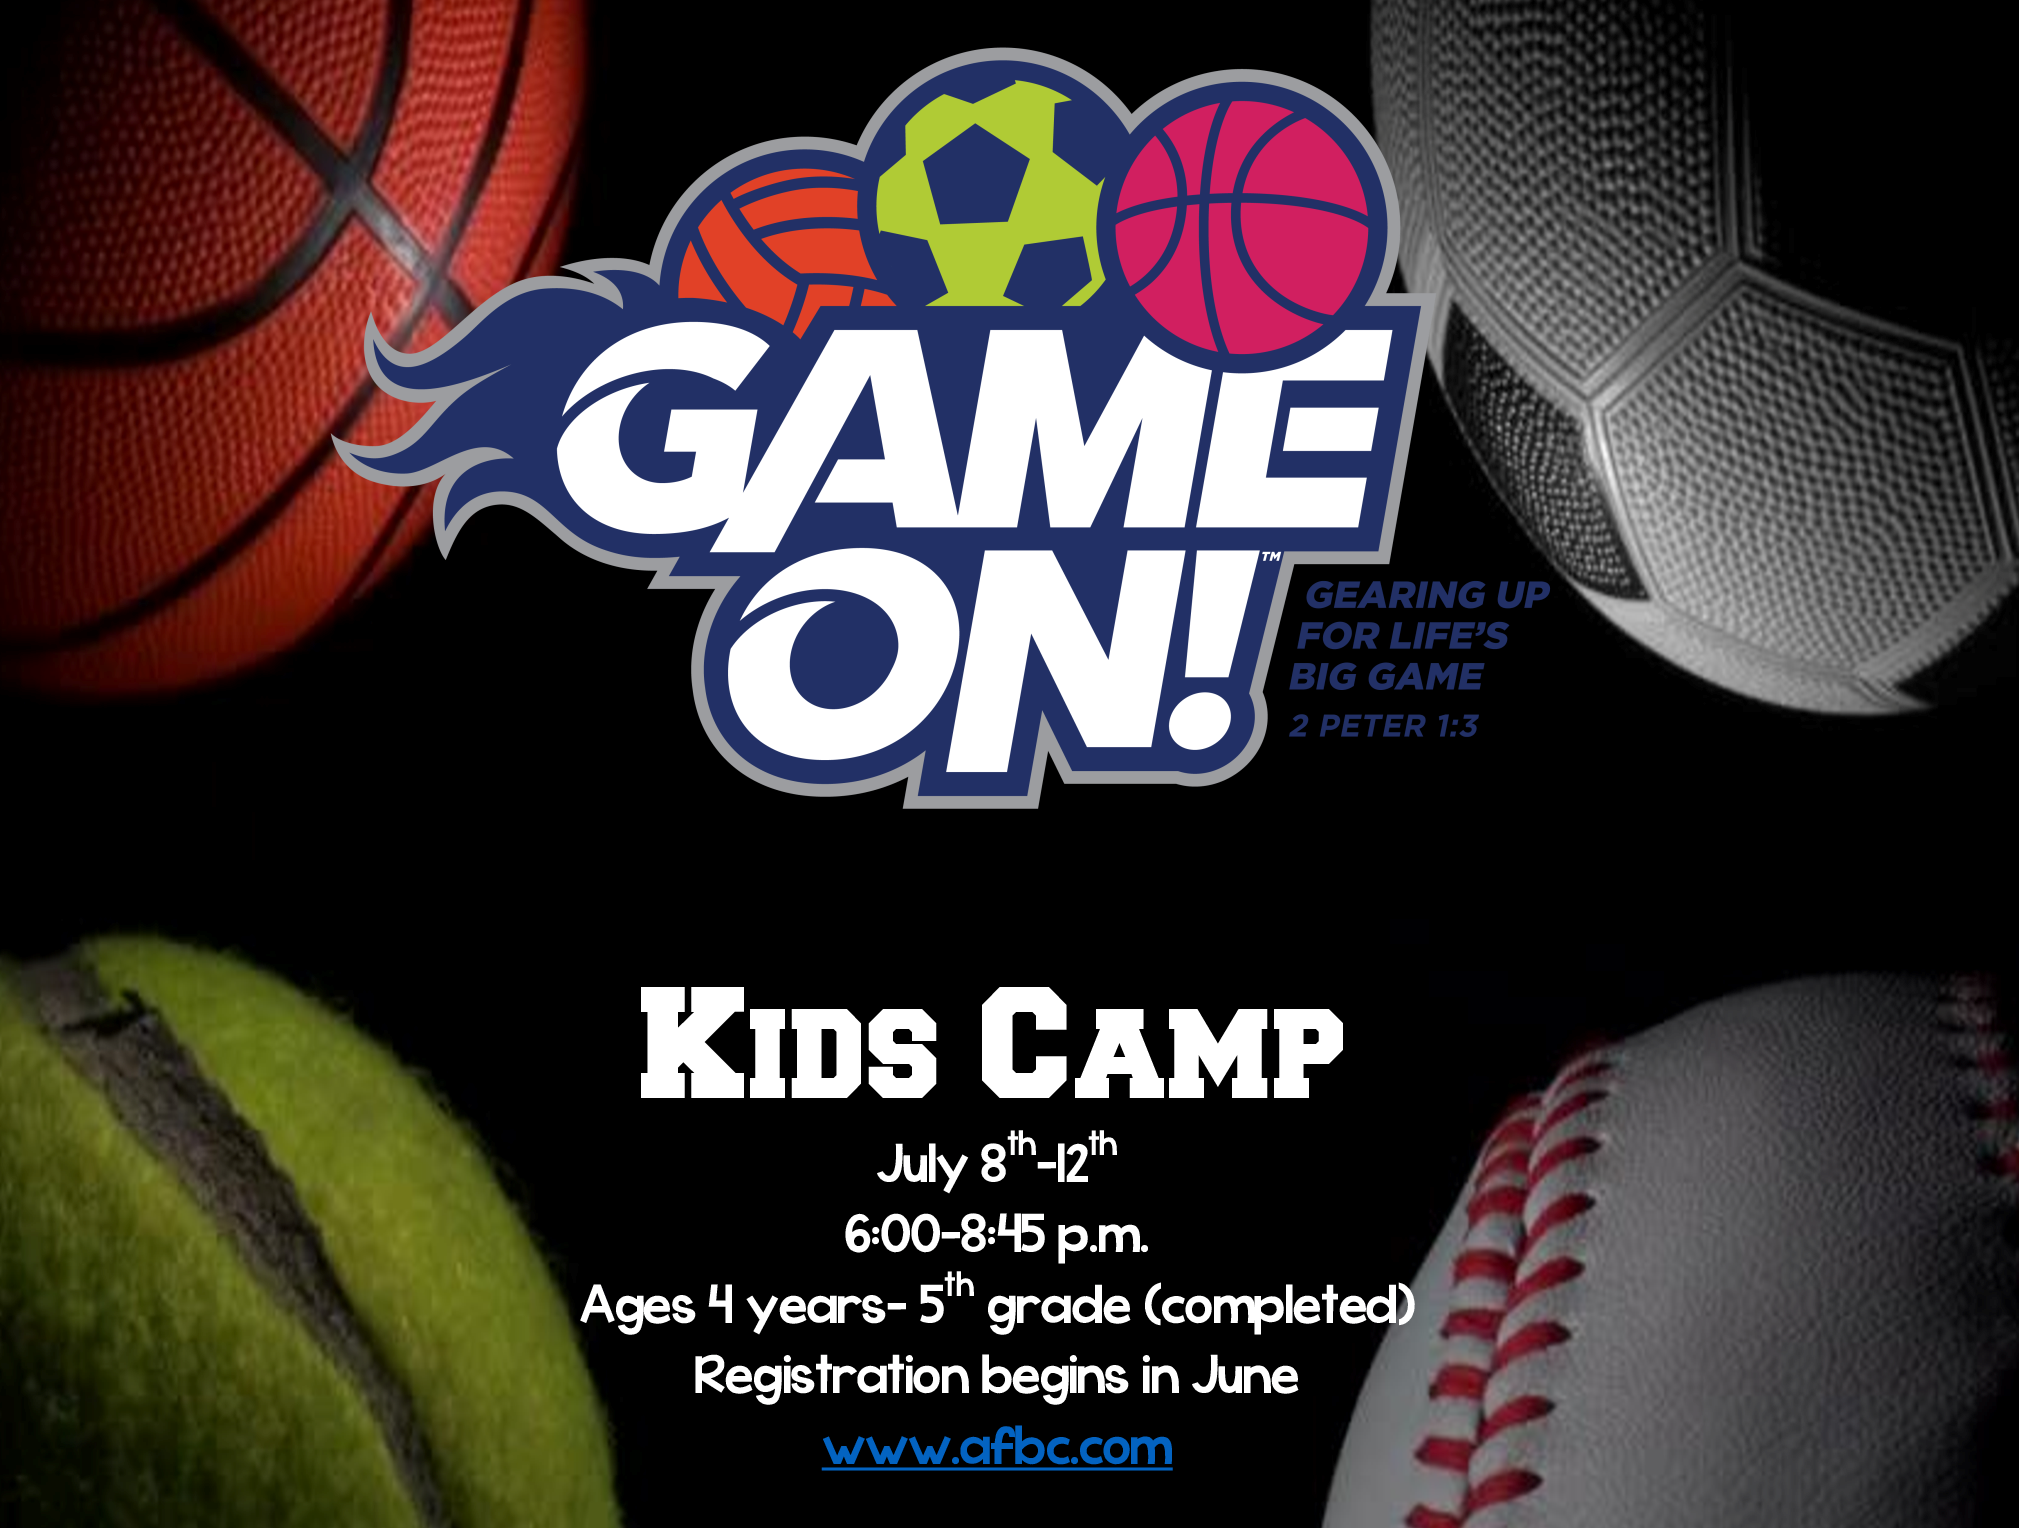 Kids Camp 2018 flyer